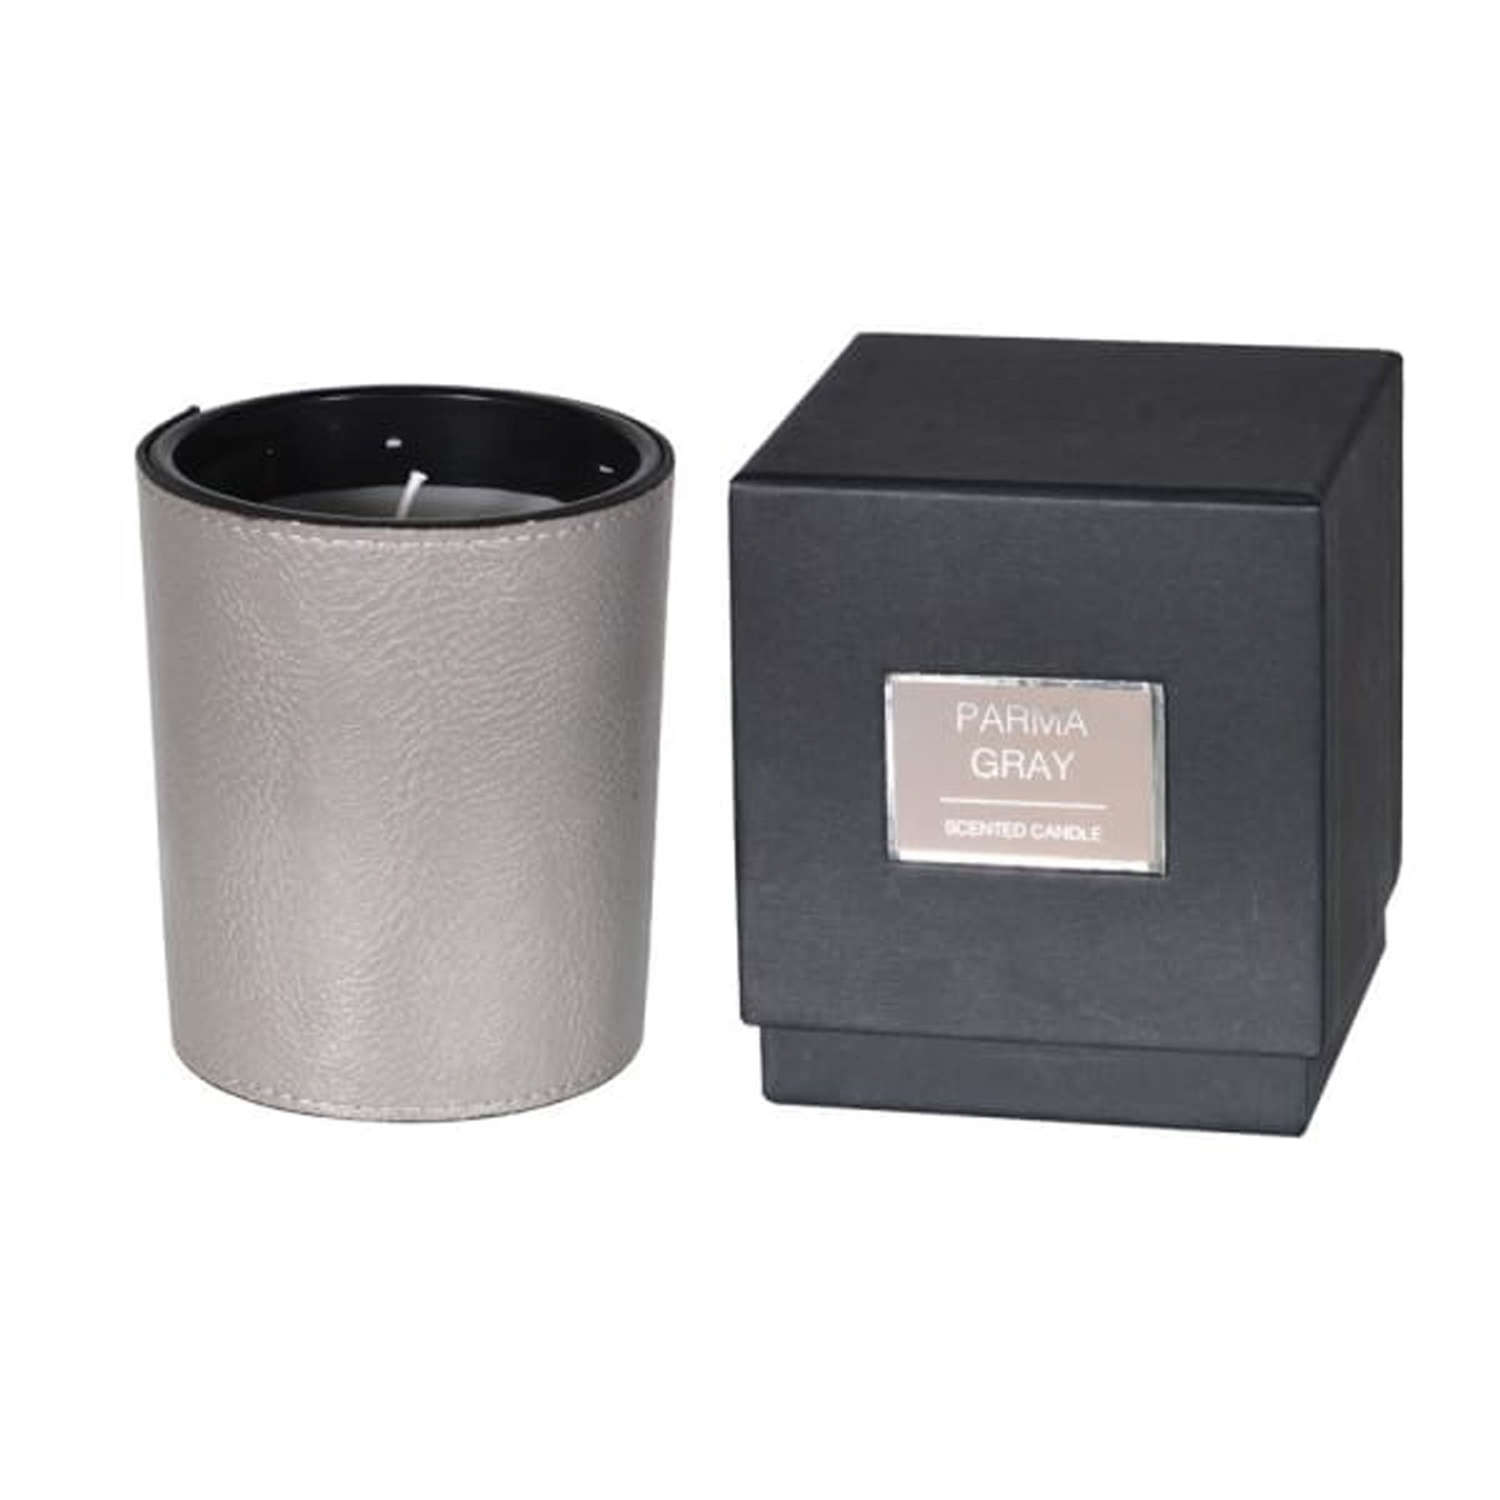 Parma Grey Scented Candle with Box